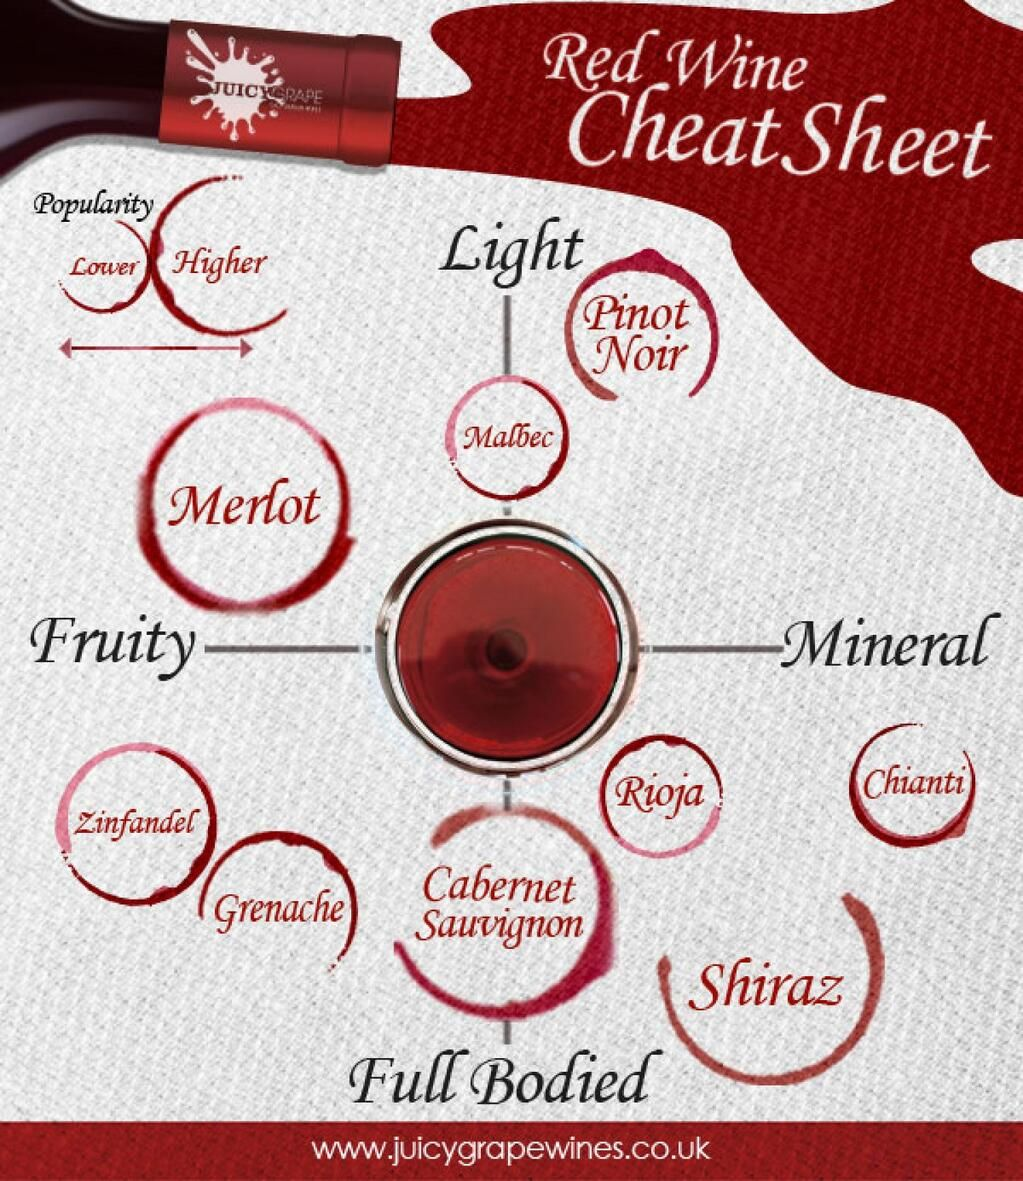 The Wine Wankers On Twitter Wine Cheat Sheet Wine Infographic Red Wine